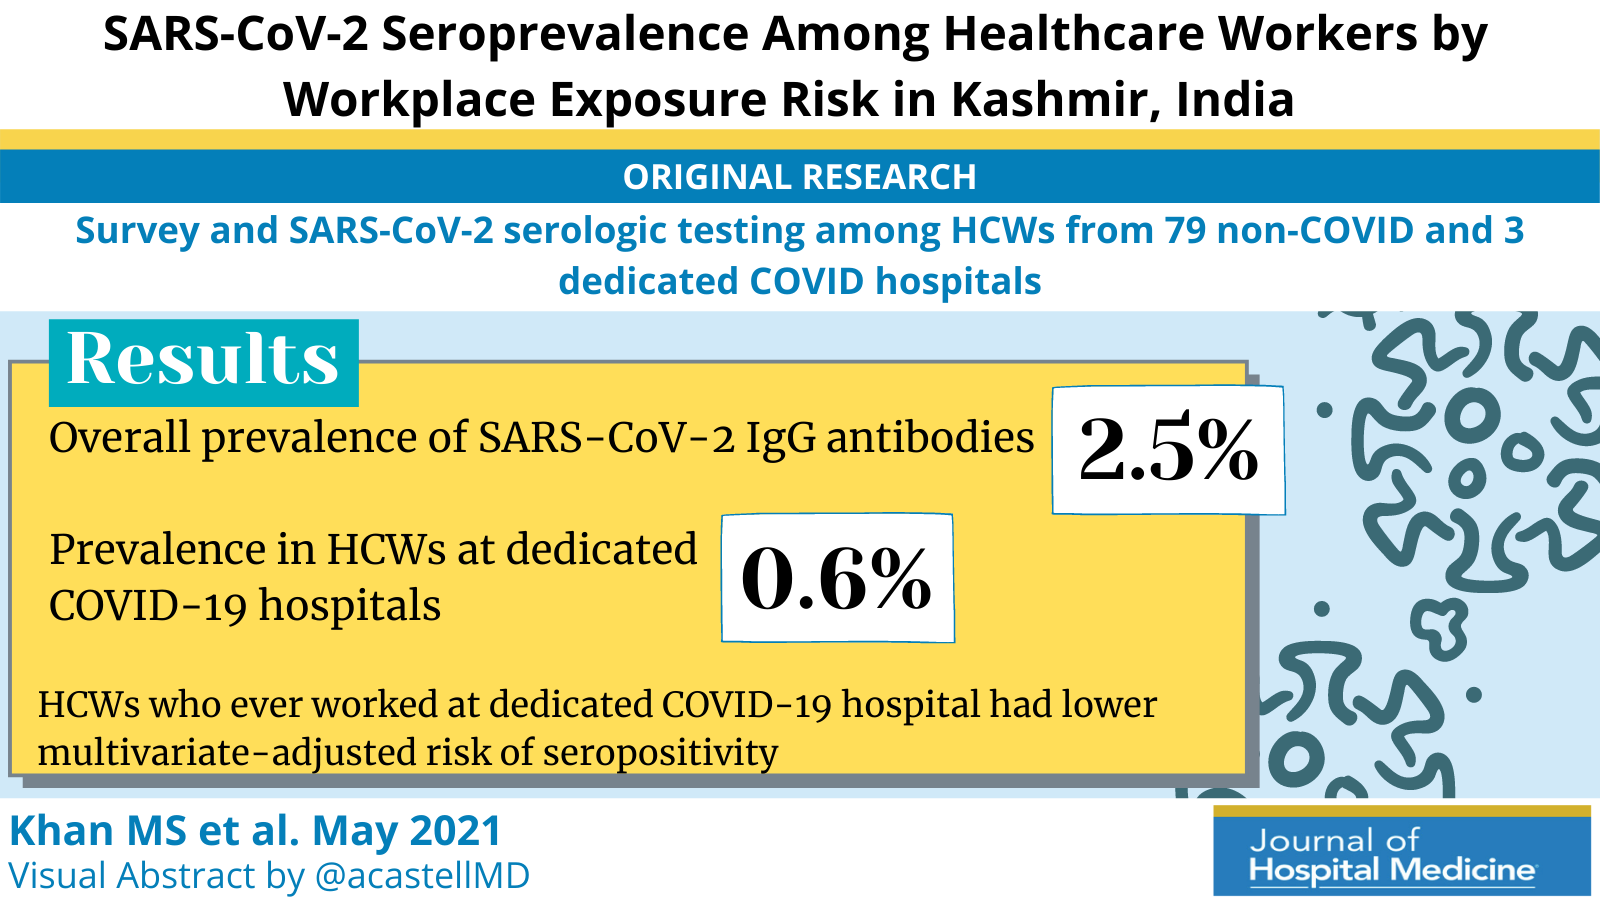 SARS-CoV-2 Seroprevalence Among Healthcare Workers by Workplace Exposure Risk in Kashmir, India